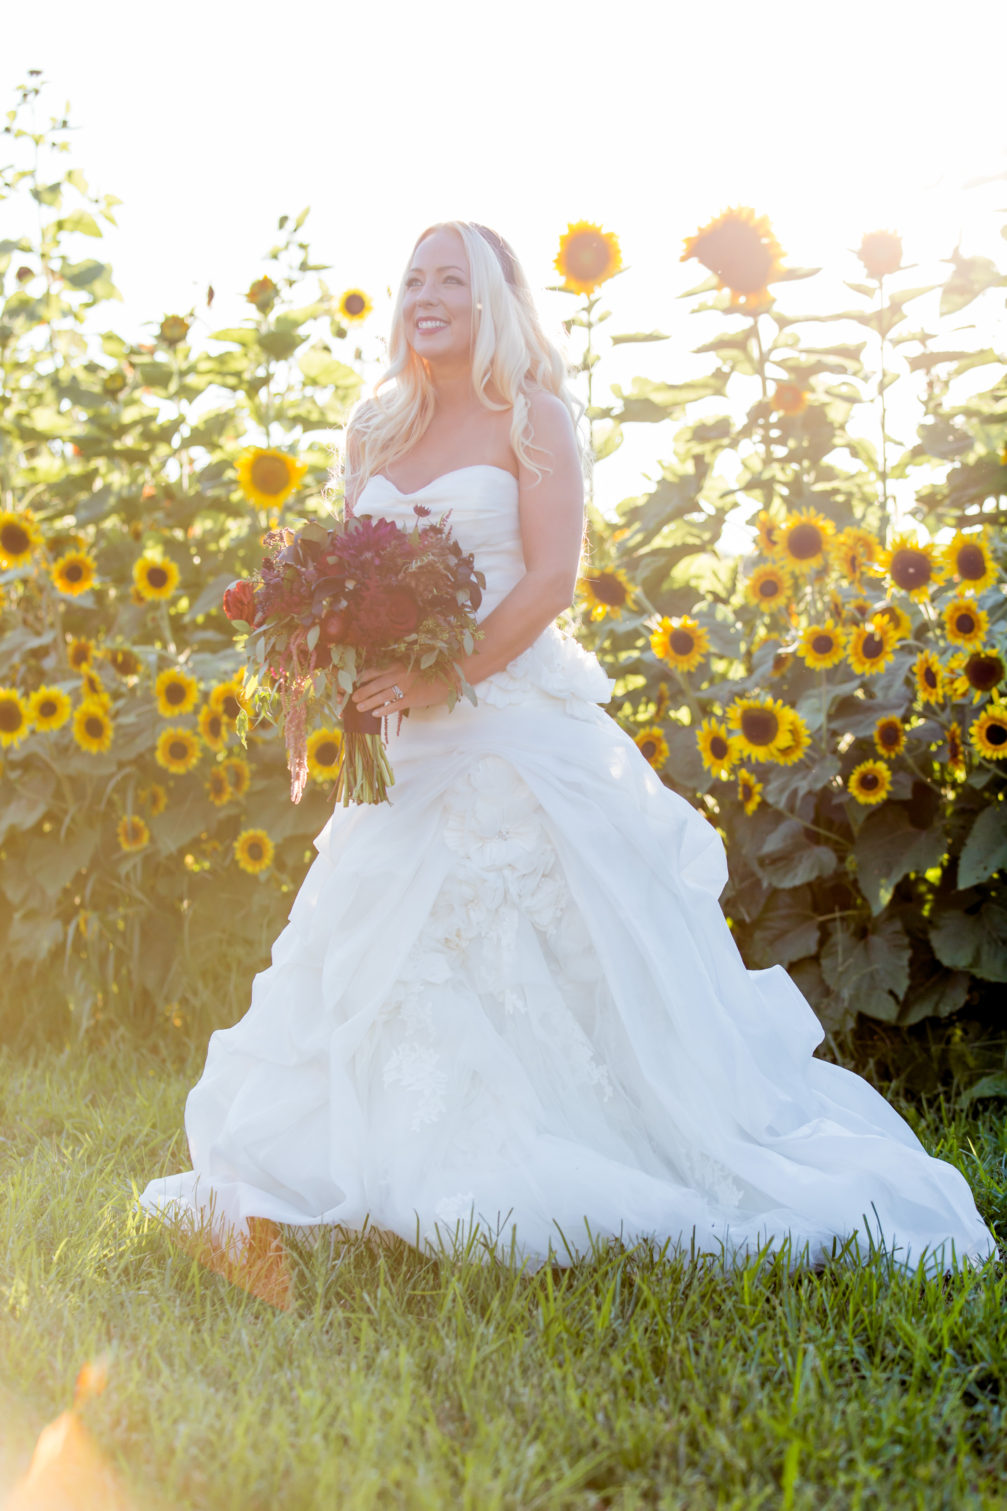 bride with bouquet for outdoor wedding